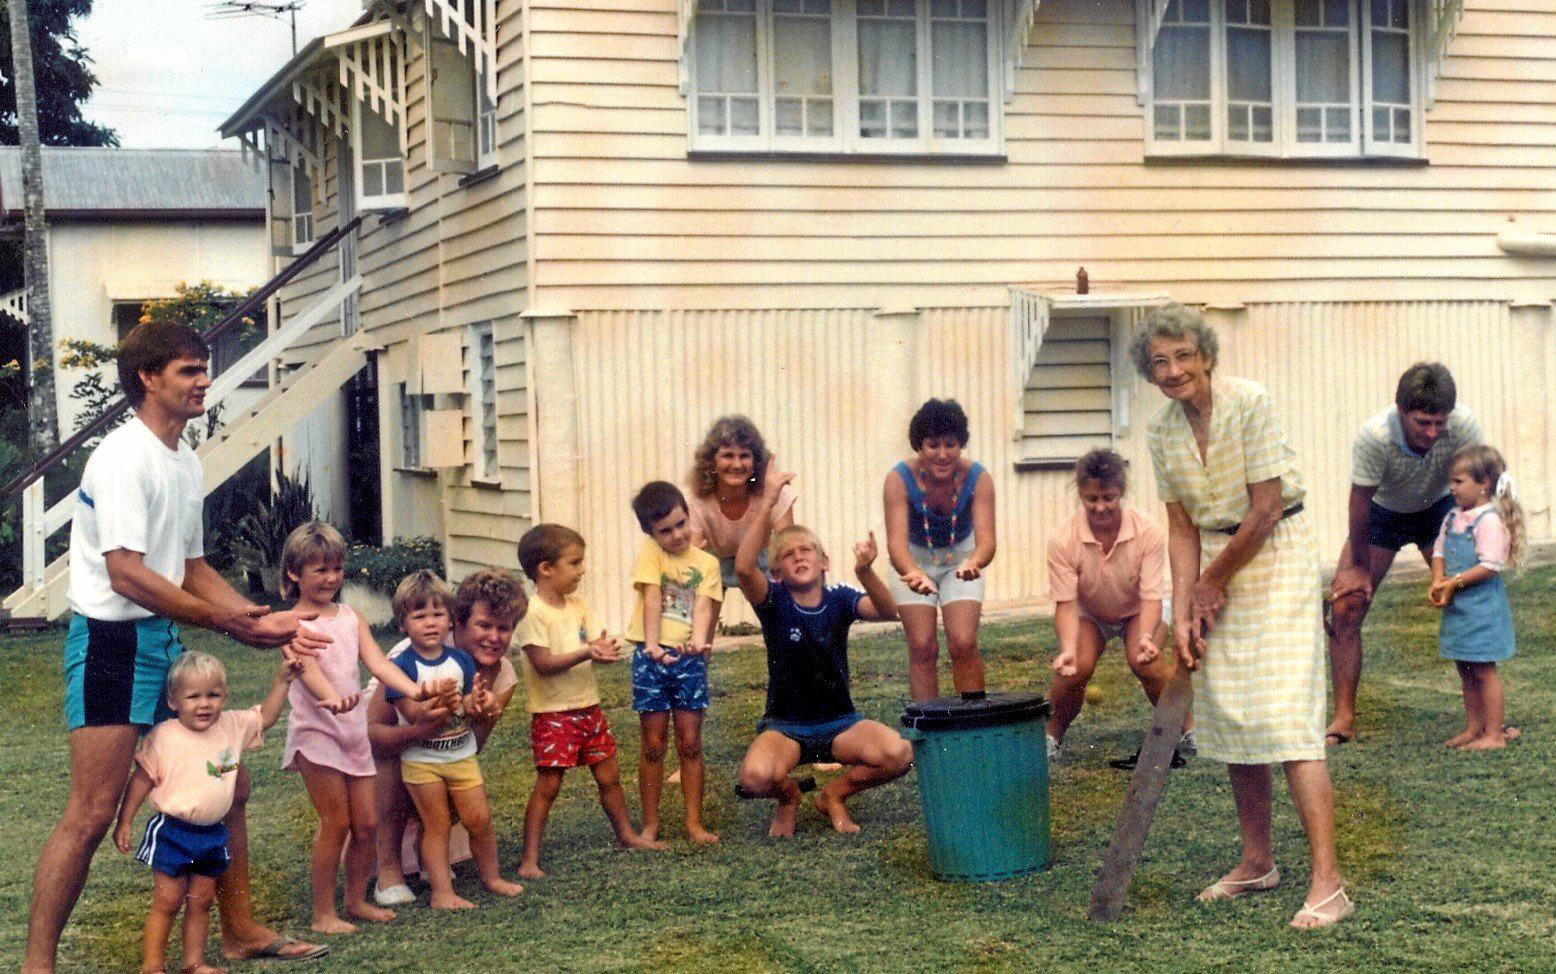 Doss Kerr playing cricket with some of her family in the backyard at 3 Atherton St Sarina. Son Alan (who lives at Mackay) is on left and his sister Leanne Kerr in middle with her husband Paul Buchanan on right. INSET BELOW LEFT: Gladys Petersen (wife of Stan Petersen of Petersen Bros butchery, Sarina) with Sarina Methodist Church children during a visit to Shinfield Methodist Church on Sarina Range during the early 1950s. Kerr boys Bill and David are standing on left. INSERT RIGHT: Bill Kerr (left) at the launch of Tin Town Triumph with Michael Jackes.